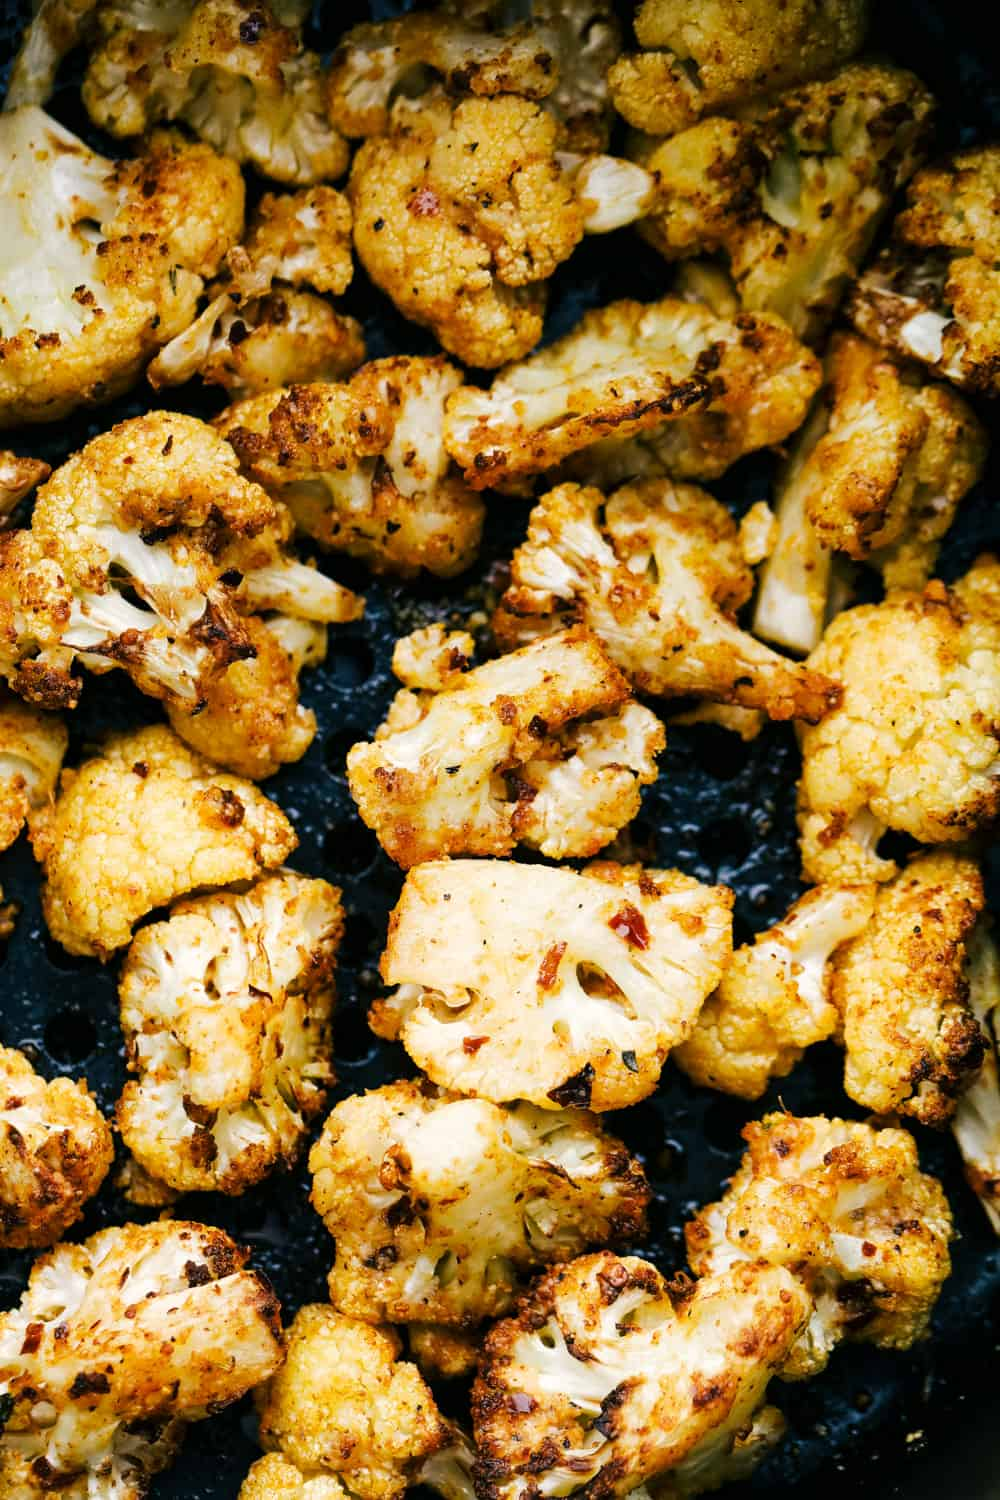 Roasted cauliflower in the air fryer.